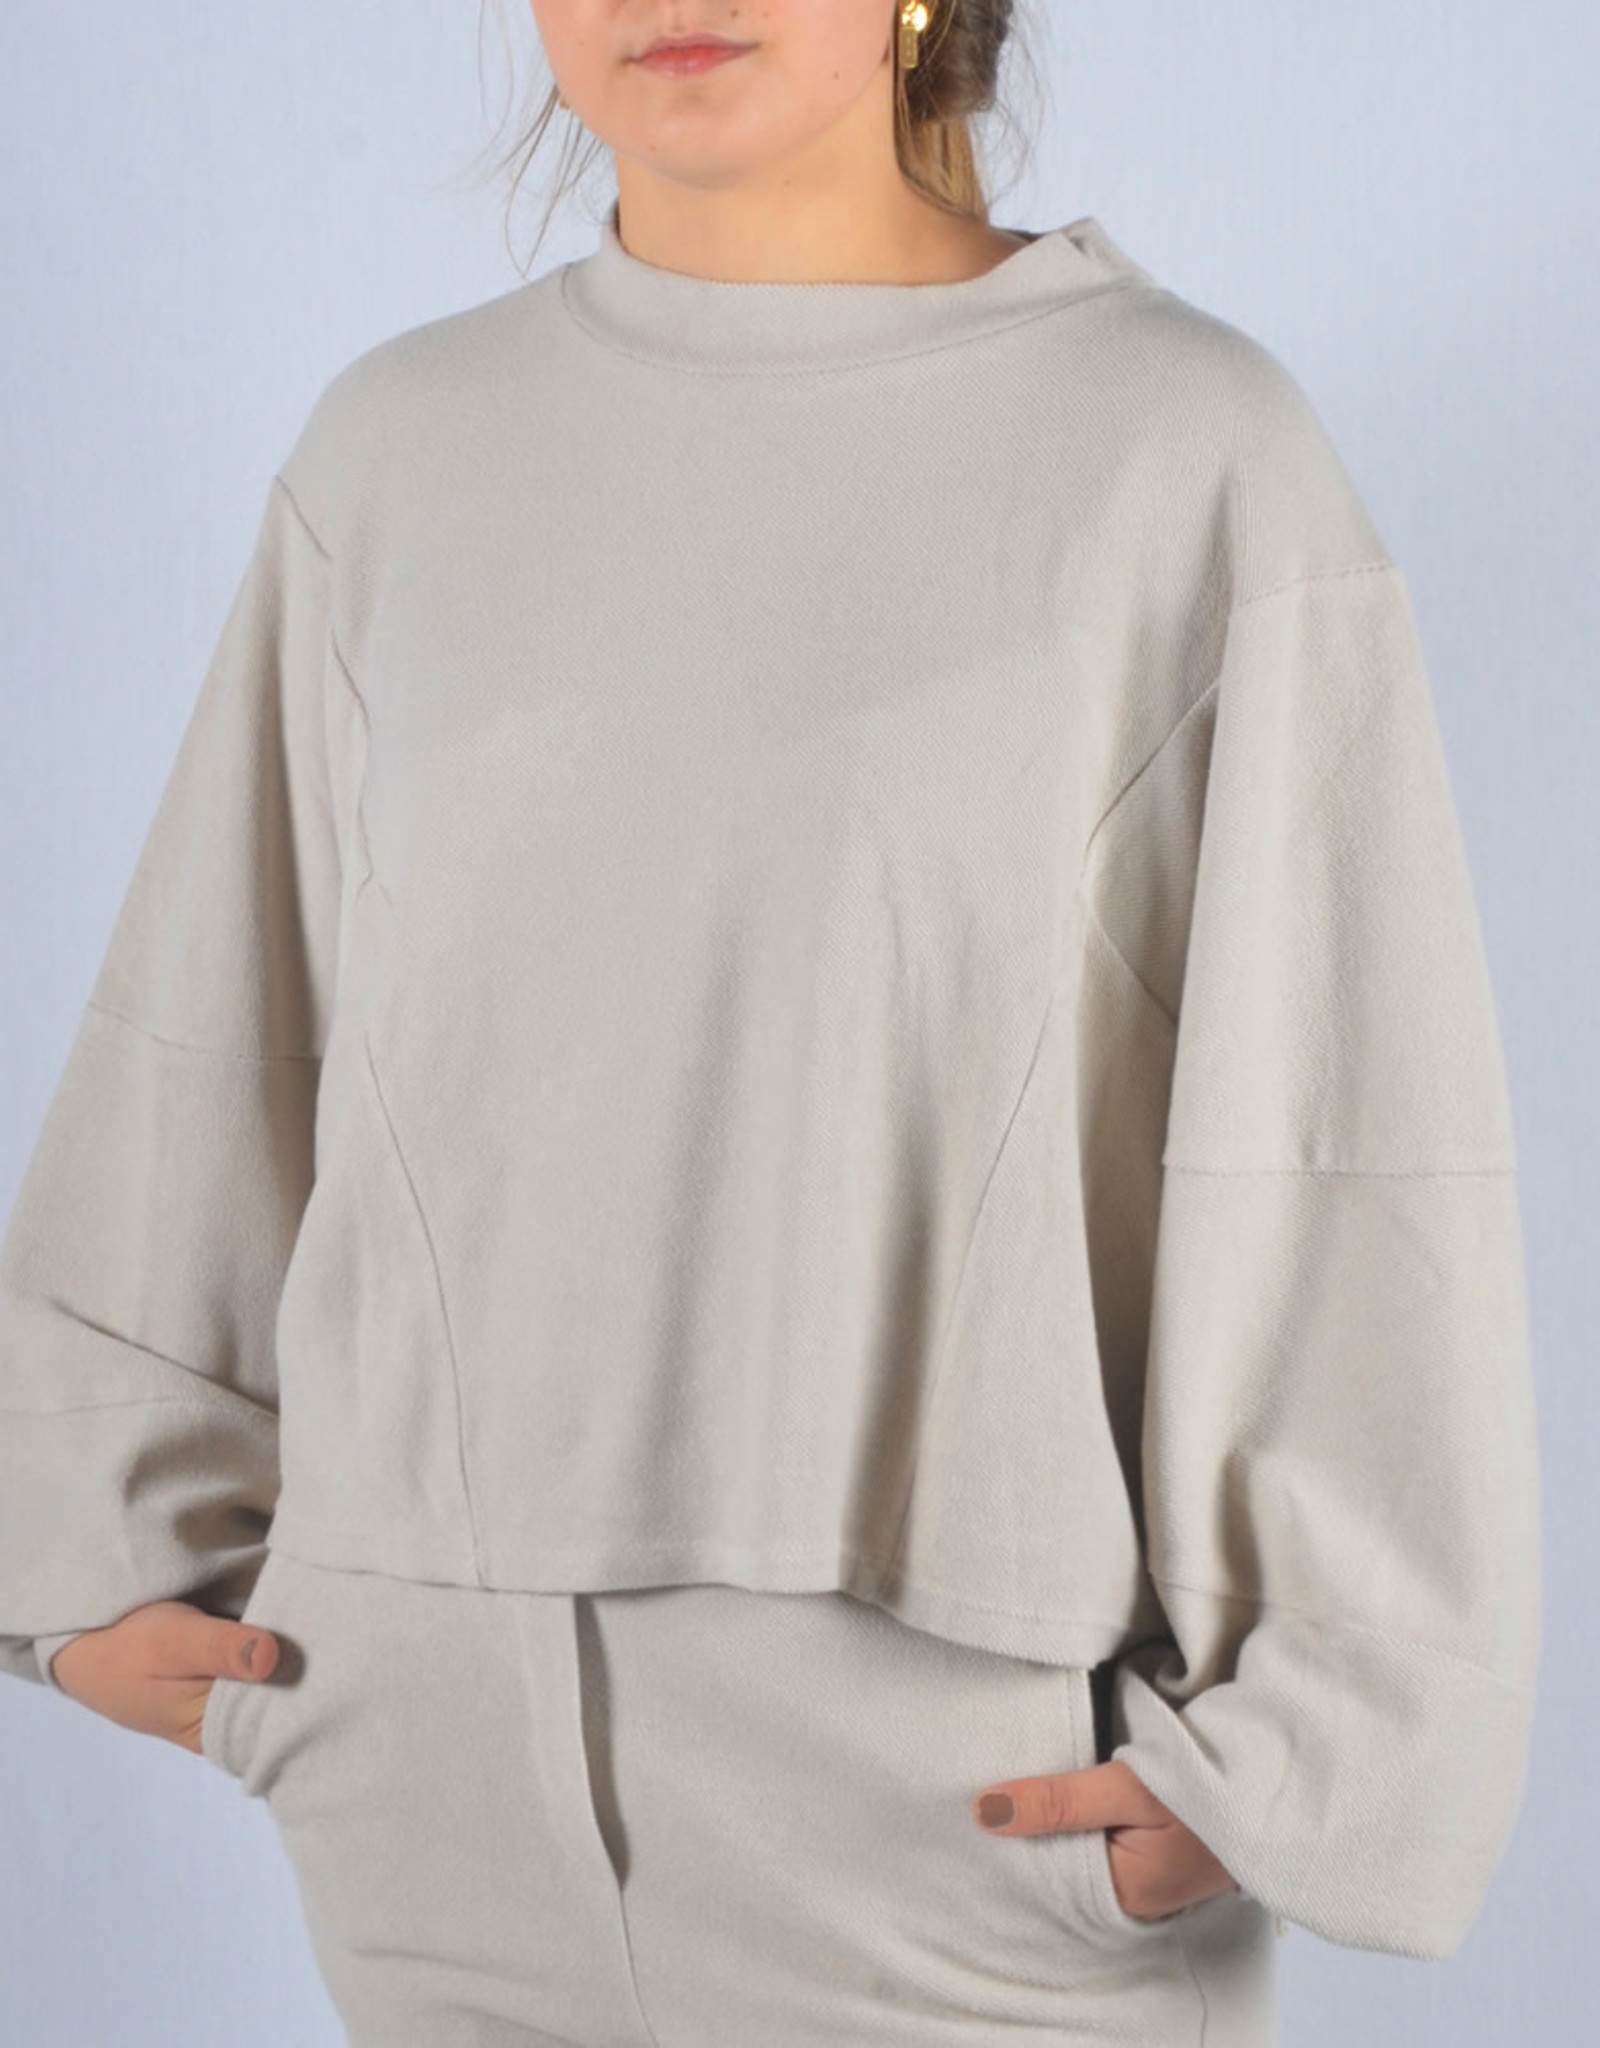 Homewear washed nude one size SET sweater & pants